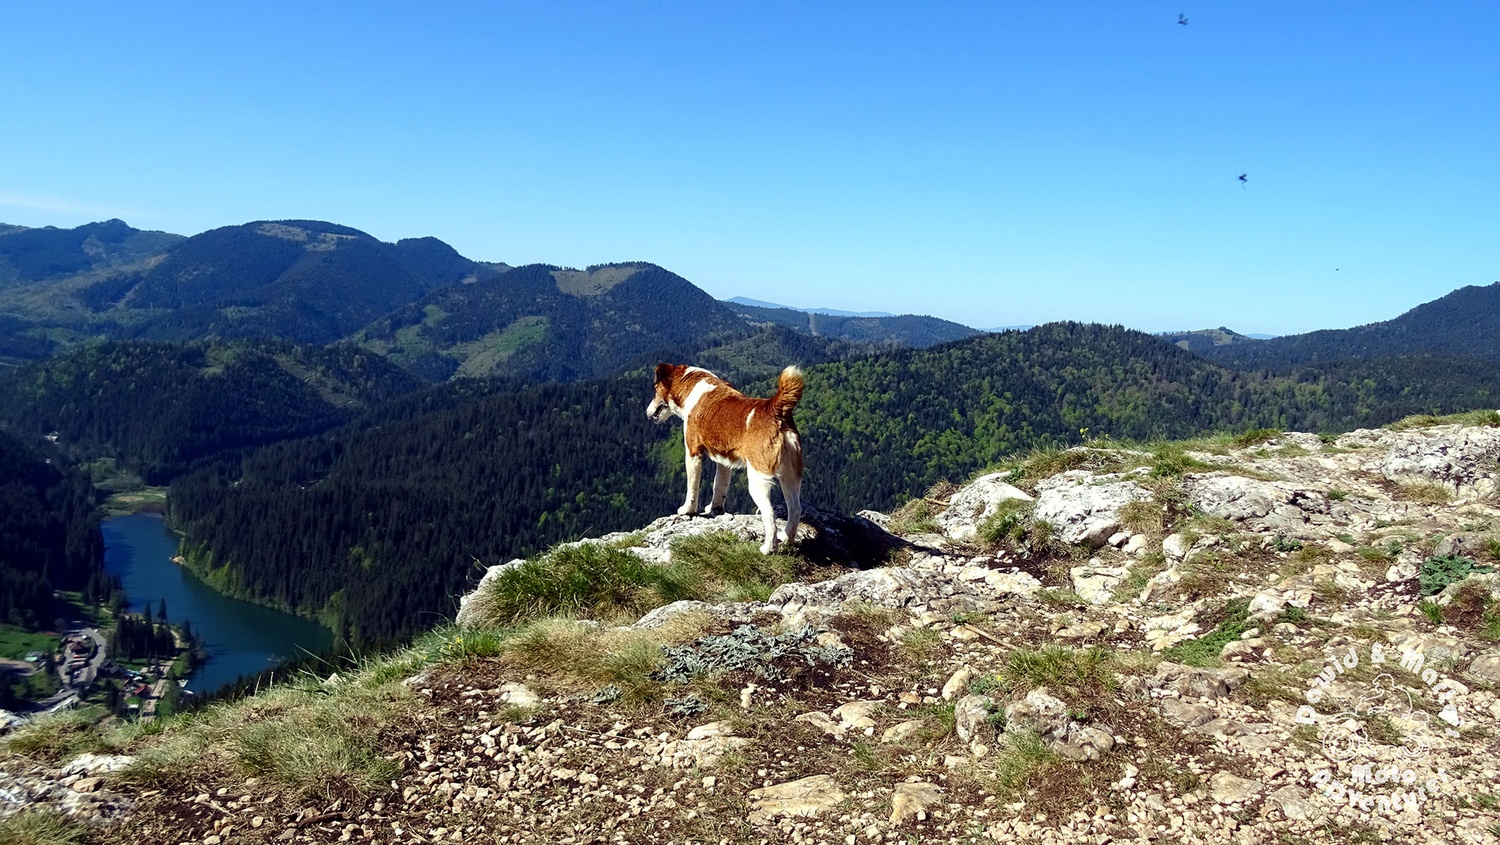 Doggy Enjoying The View